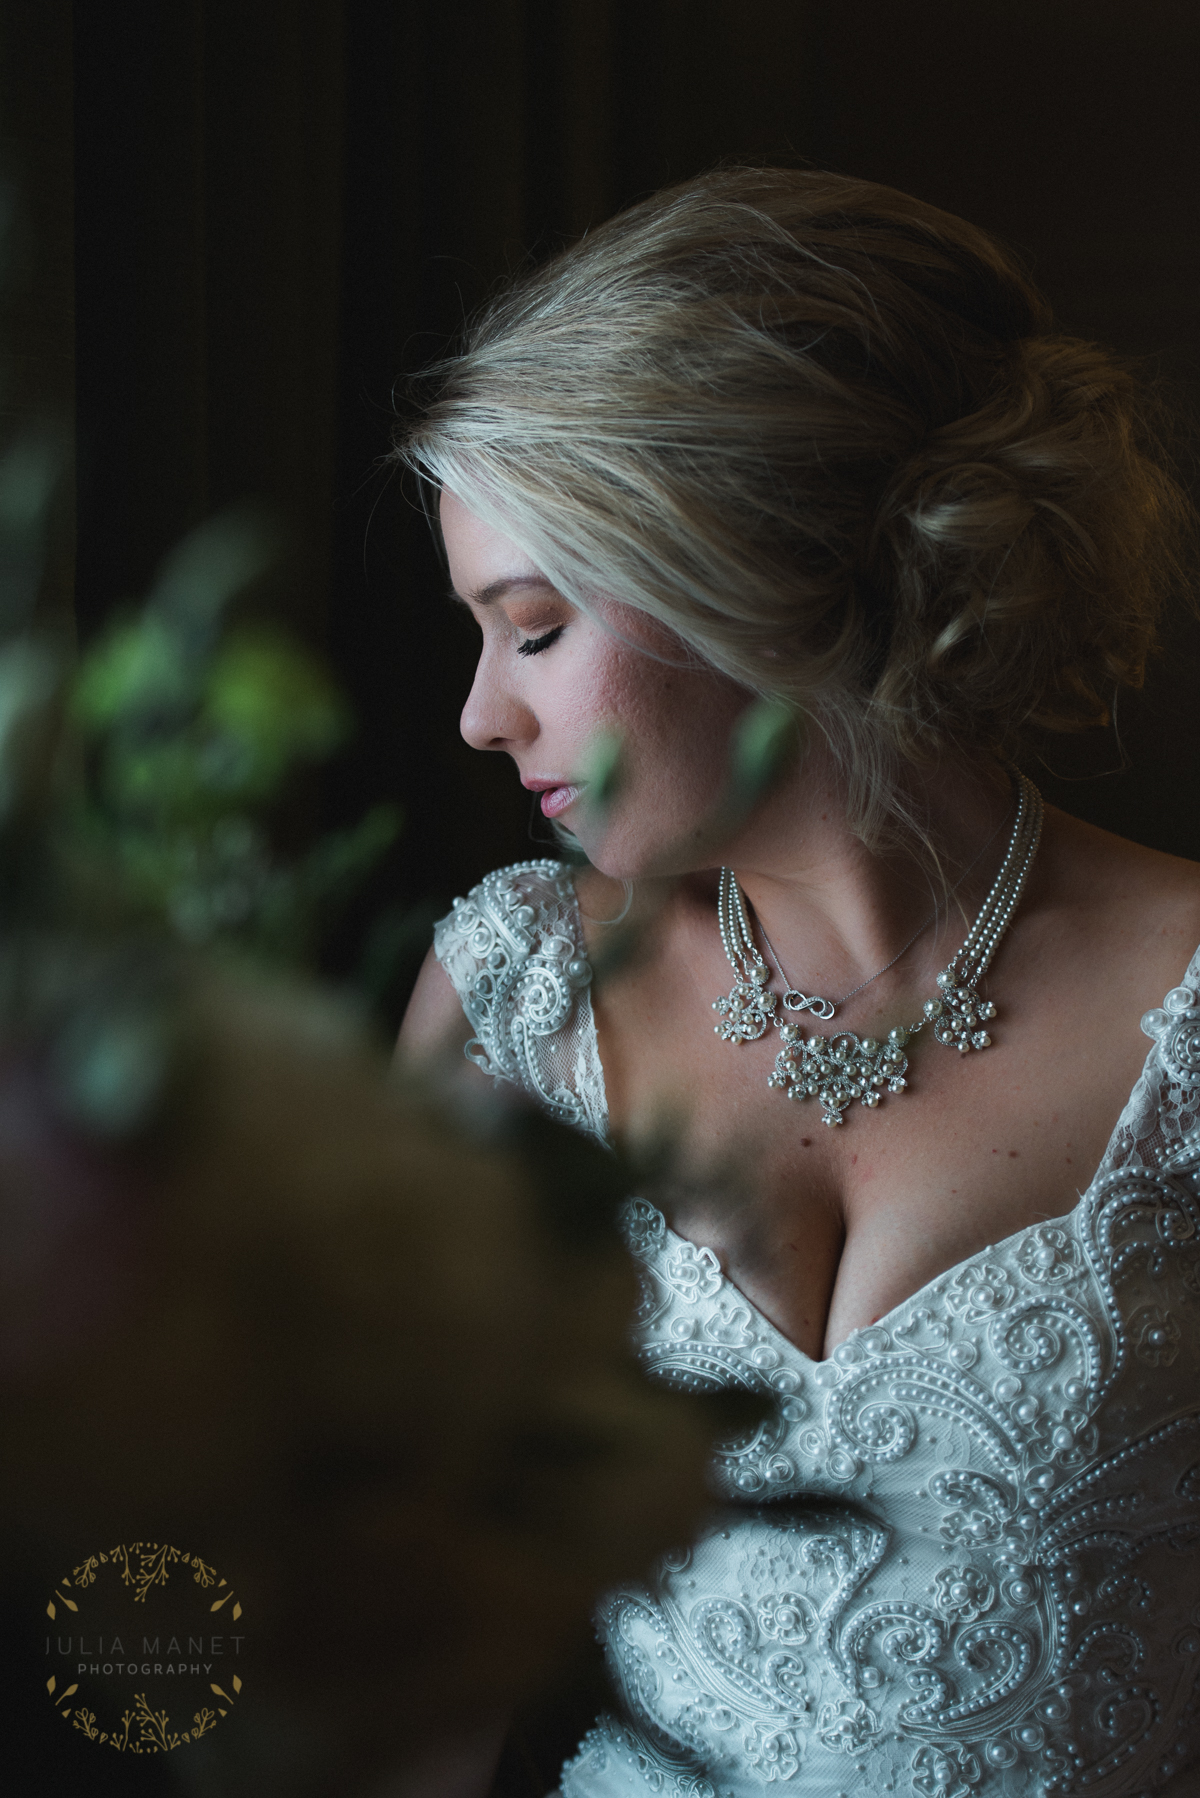 Beautiful bride prepares herself in the window light at the Hilton Garden Inn Yuma.